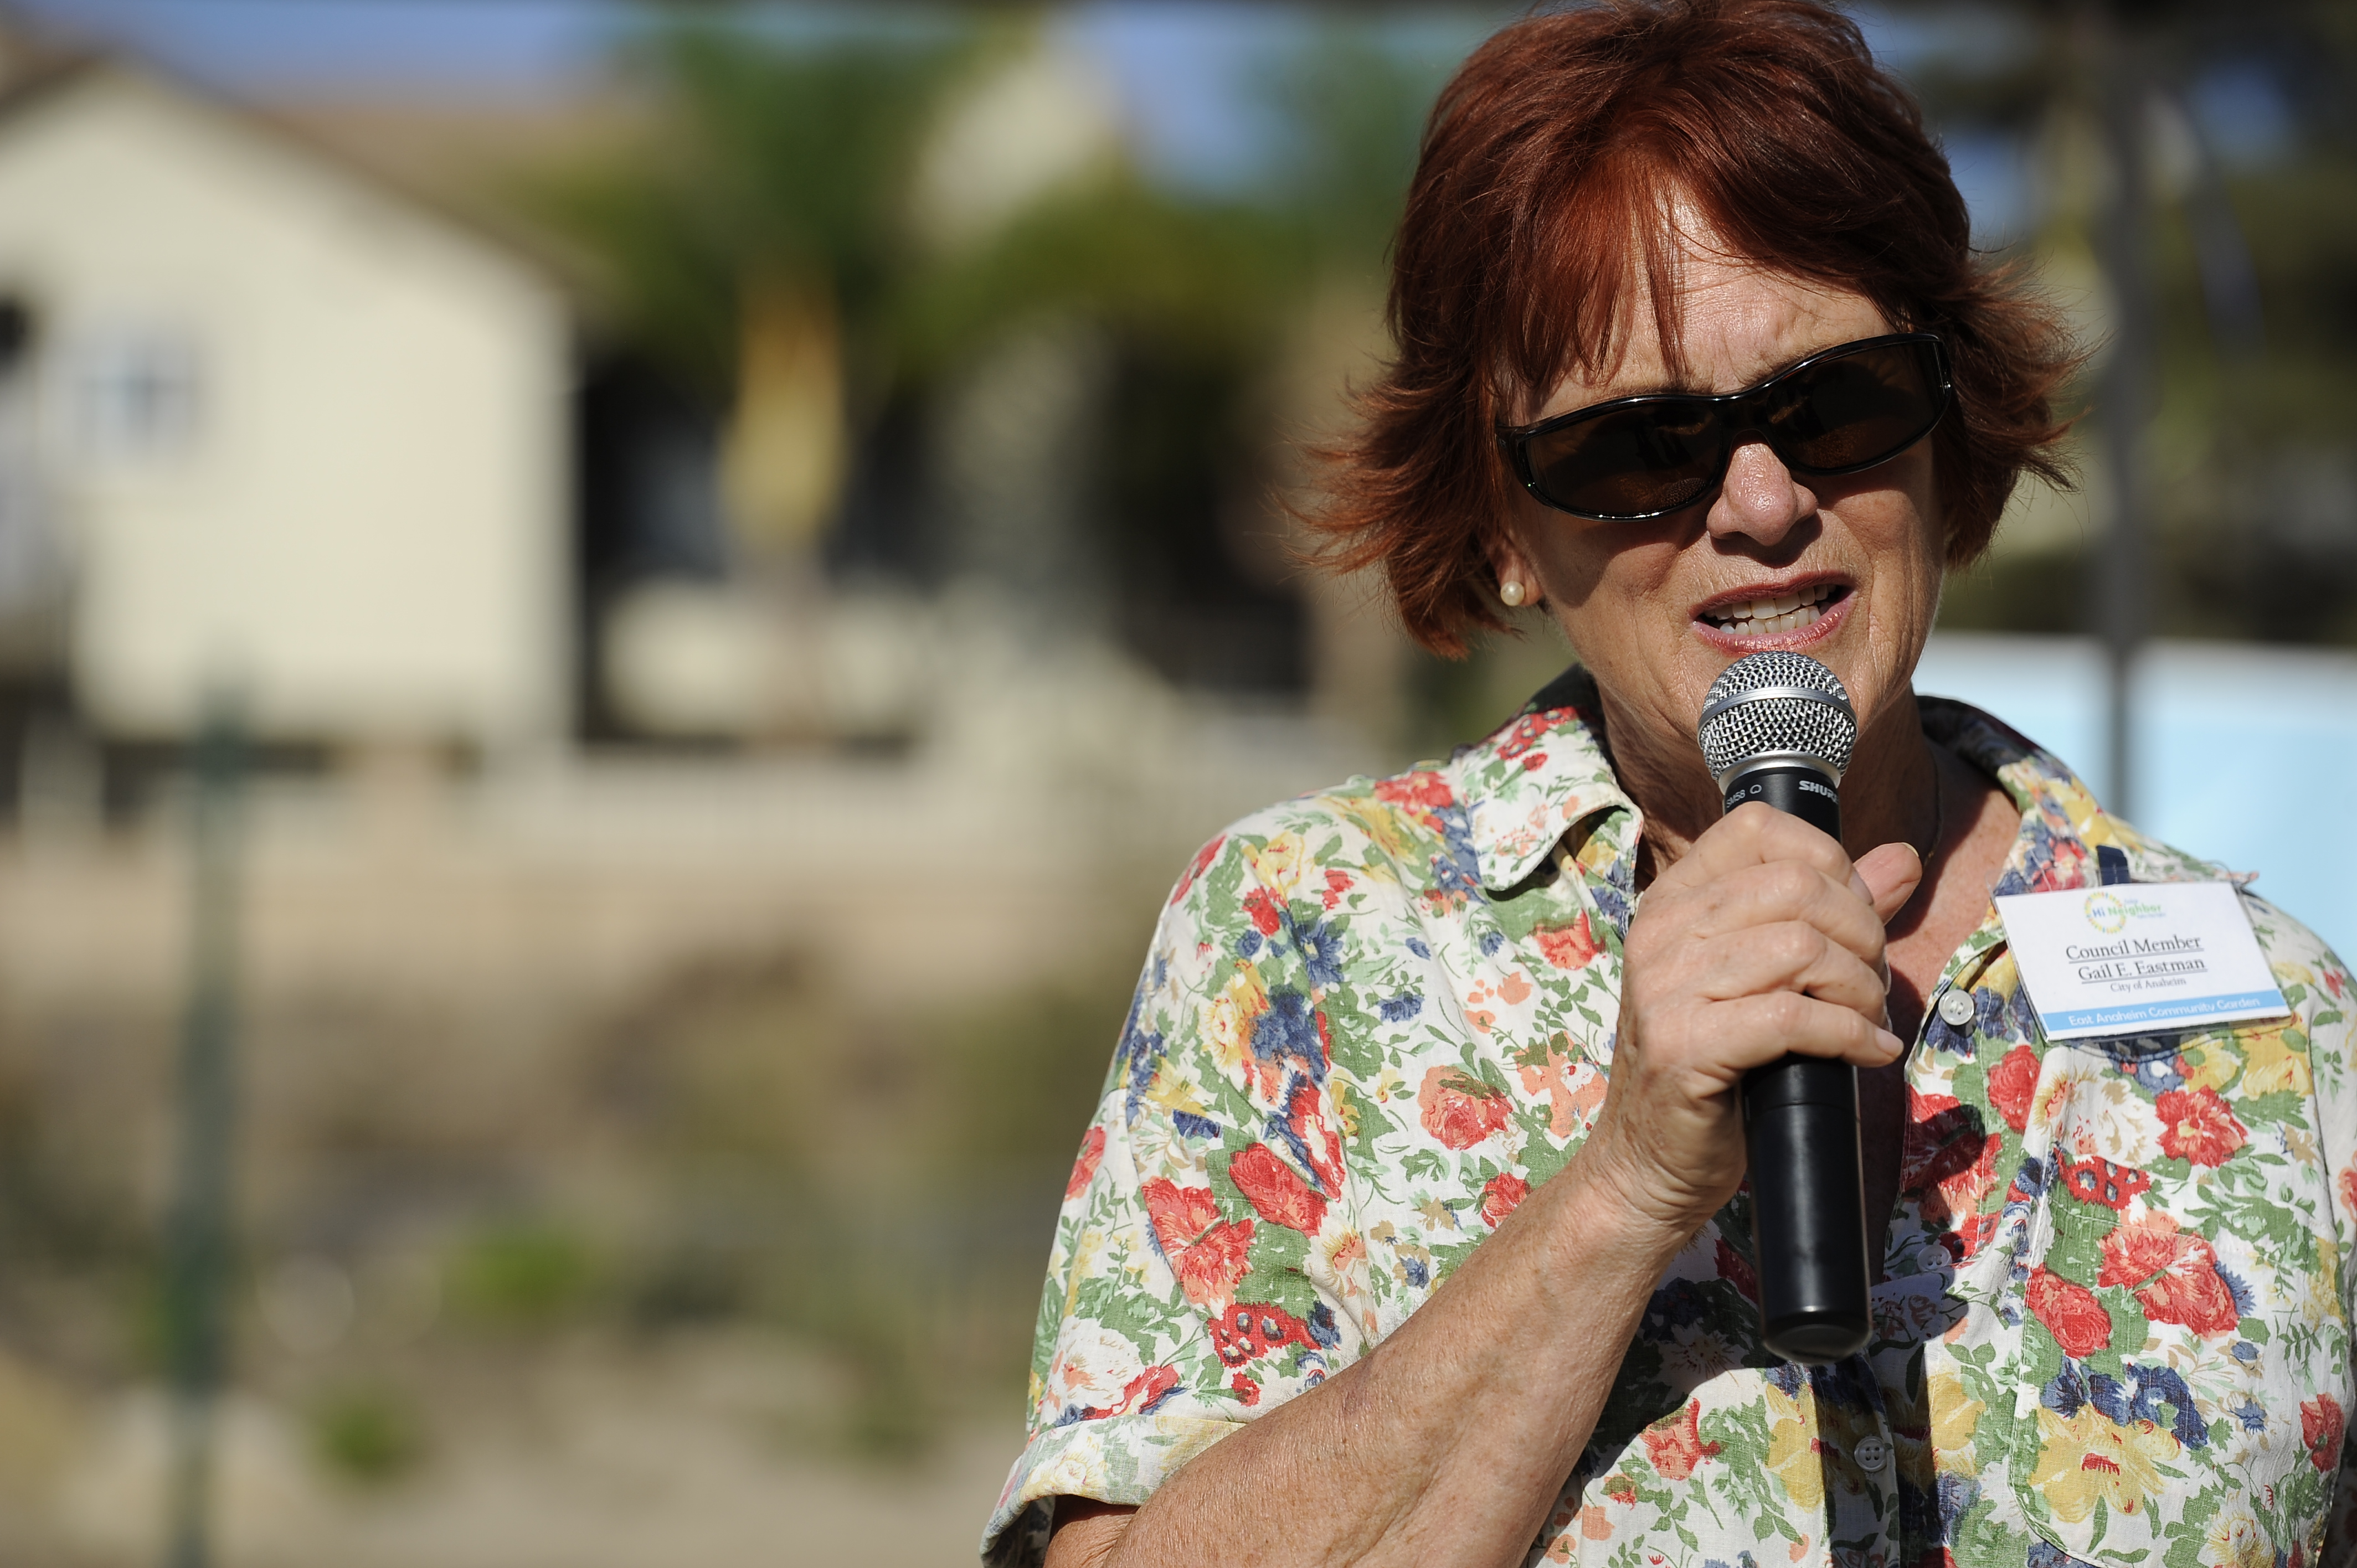 Woman wearing sunglasses talking into a microphone